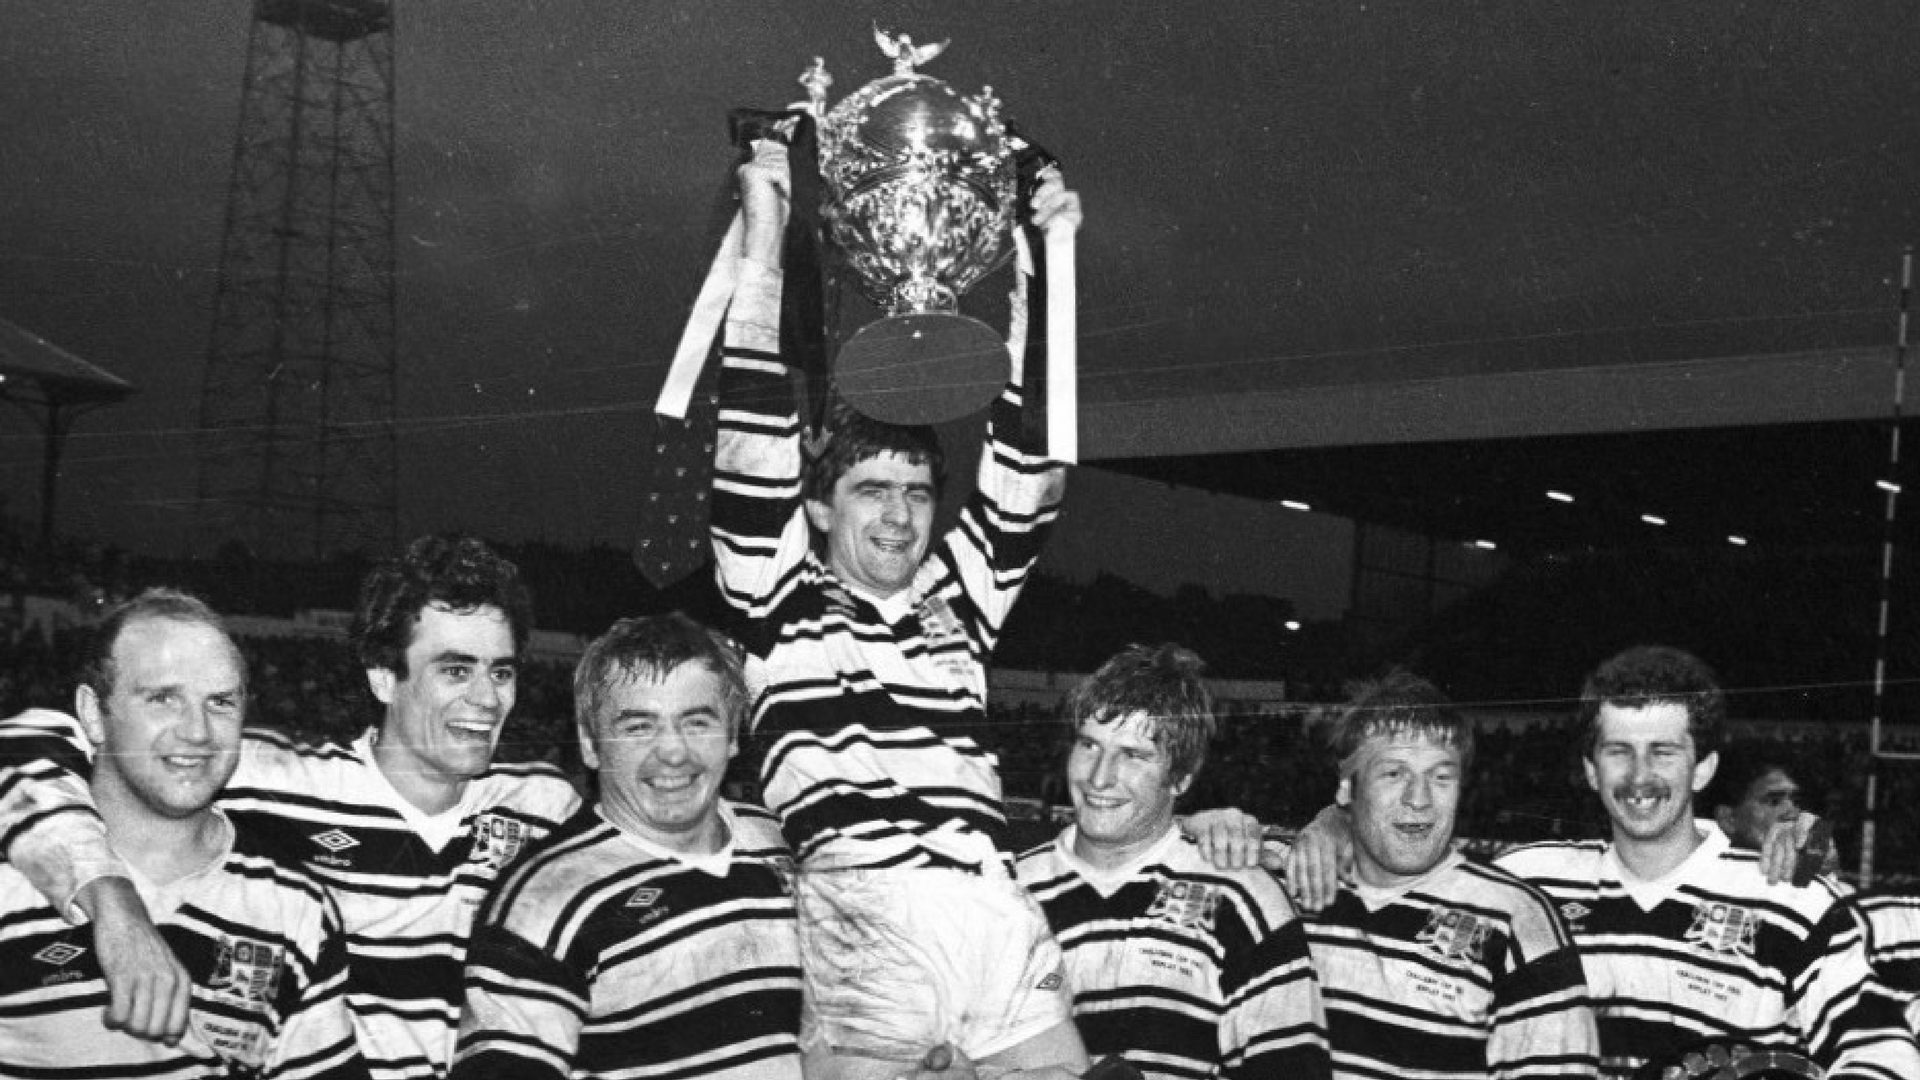 Challenge Cup number two would come in 1982, as the Black & Whites defeated Widnes in a replay at Headingley Stadium.